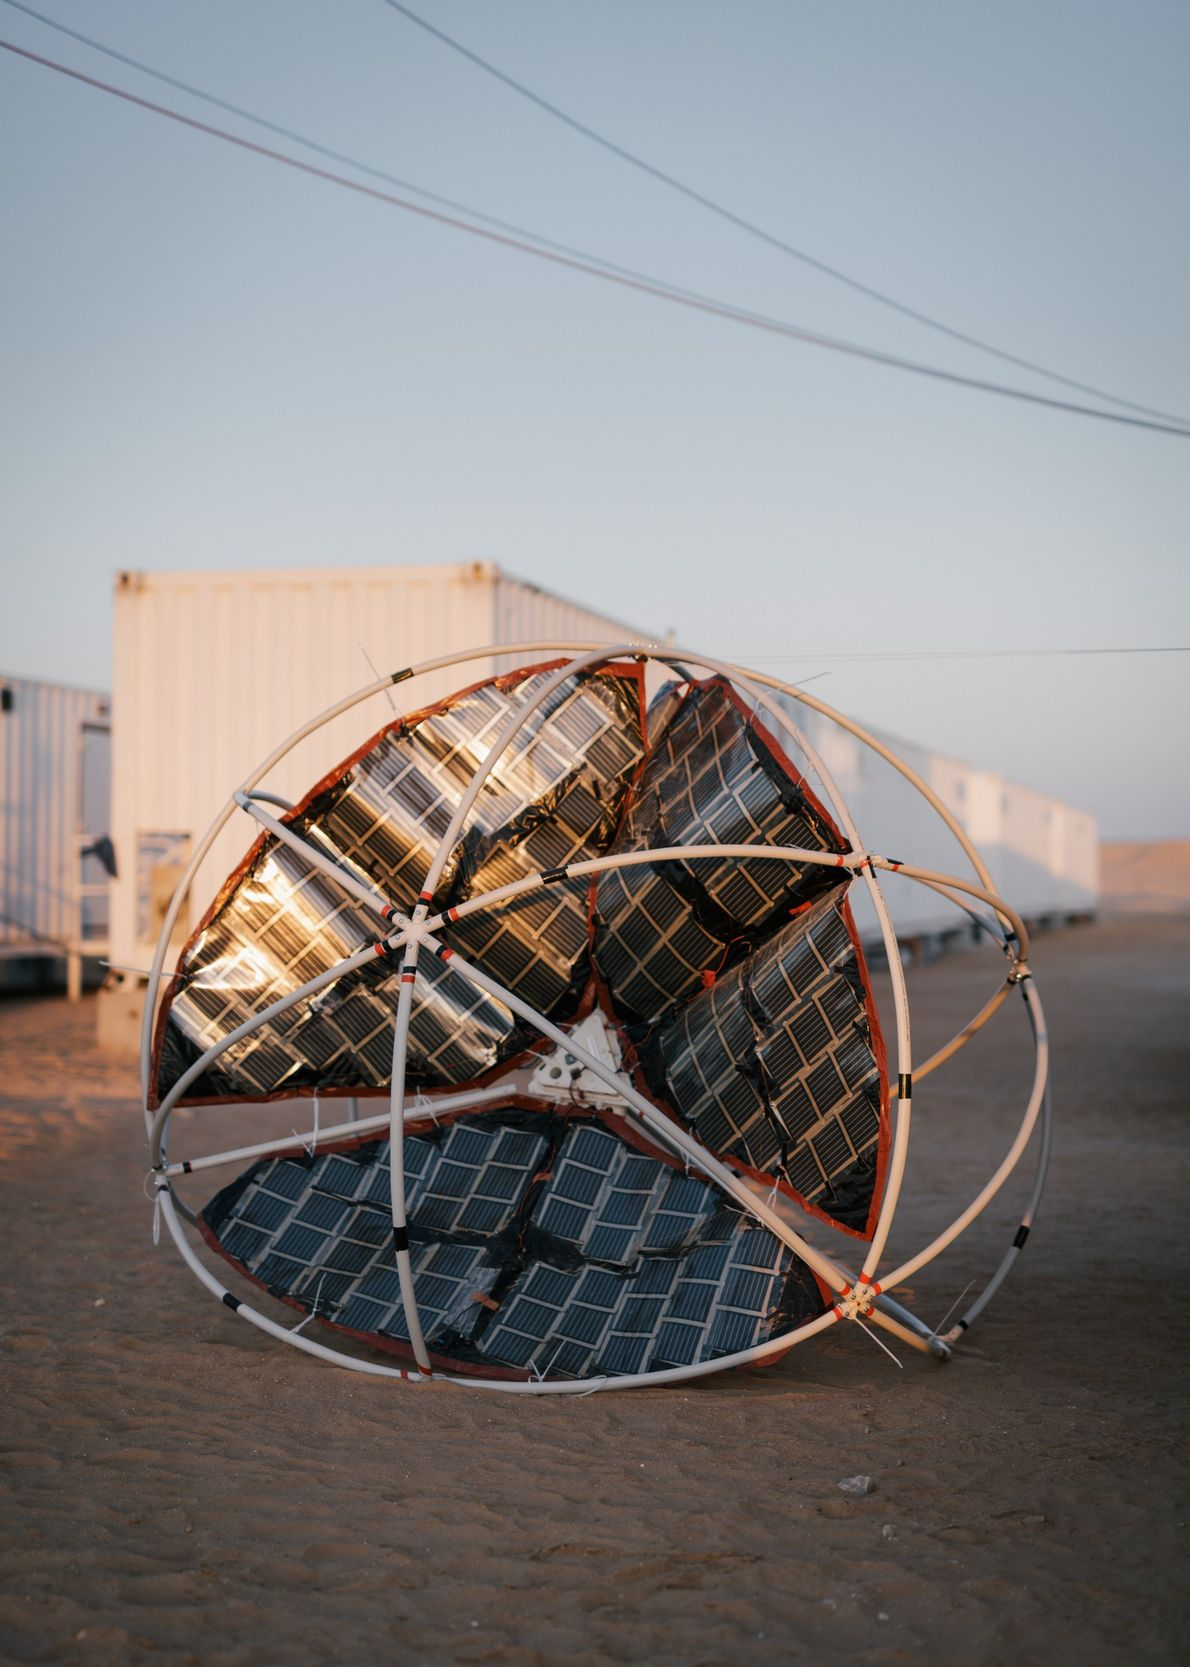 Students at Austria's Sir Karl Popper Schule designed this wind-driven rover concept, named TUMBLEWEED, to roll ...